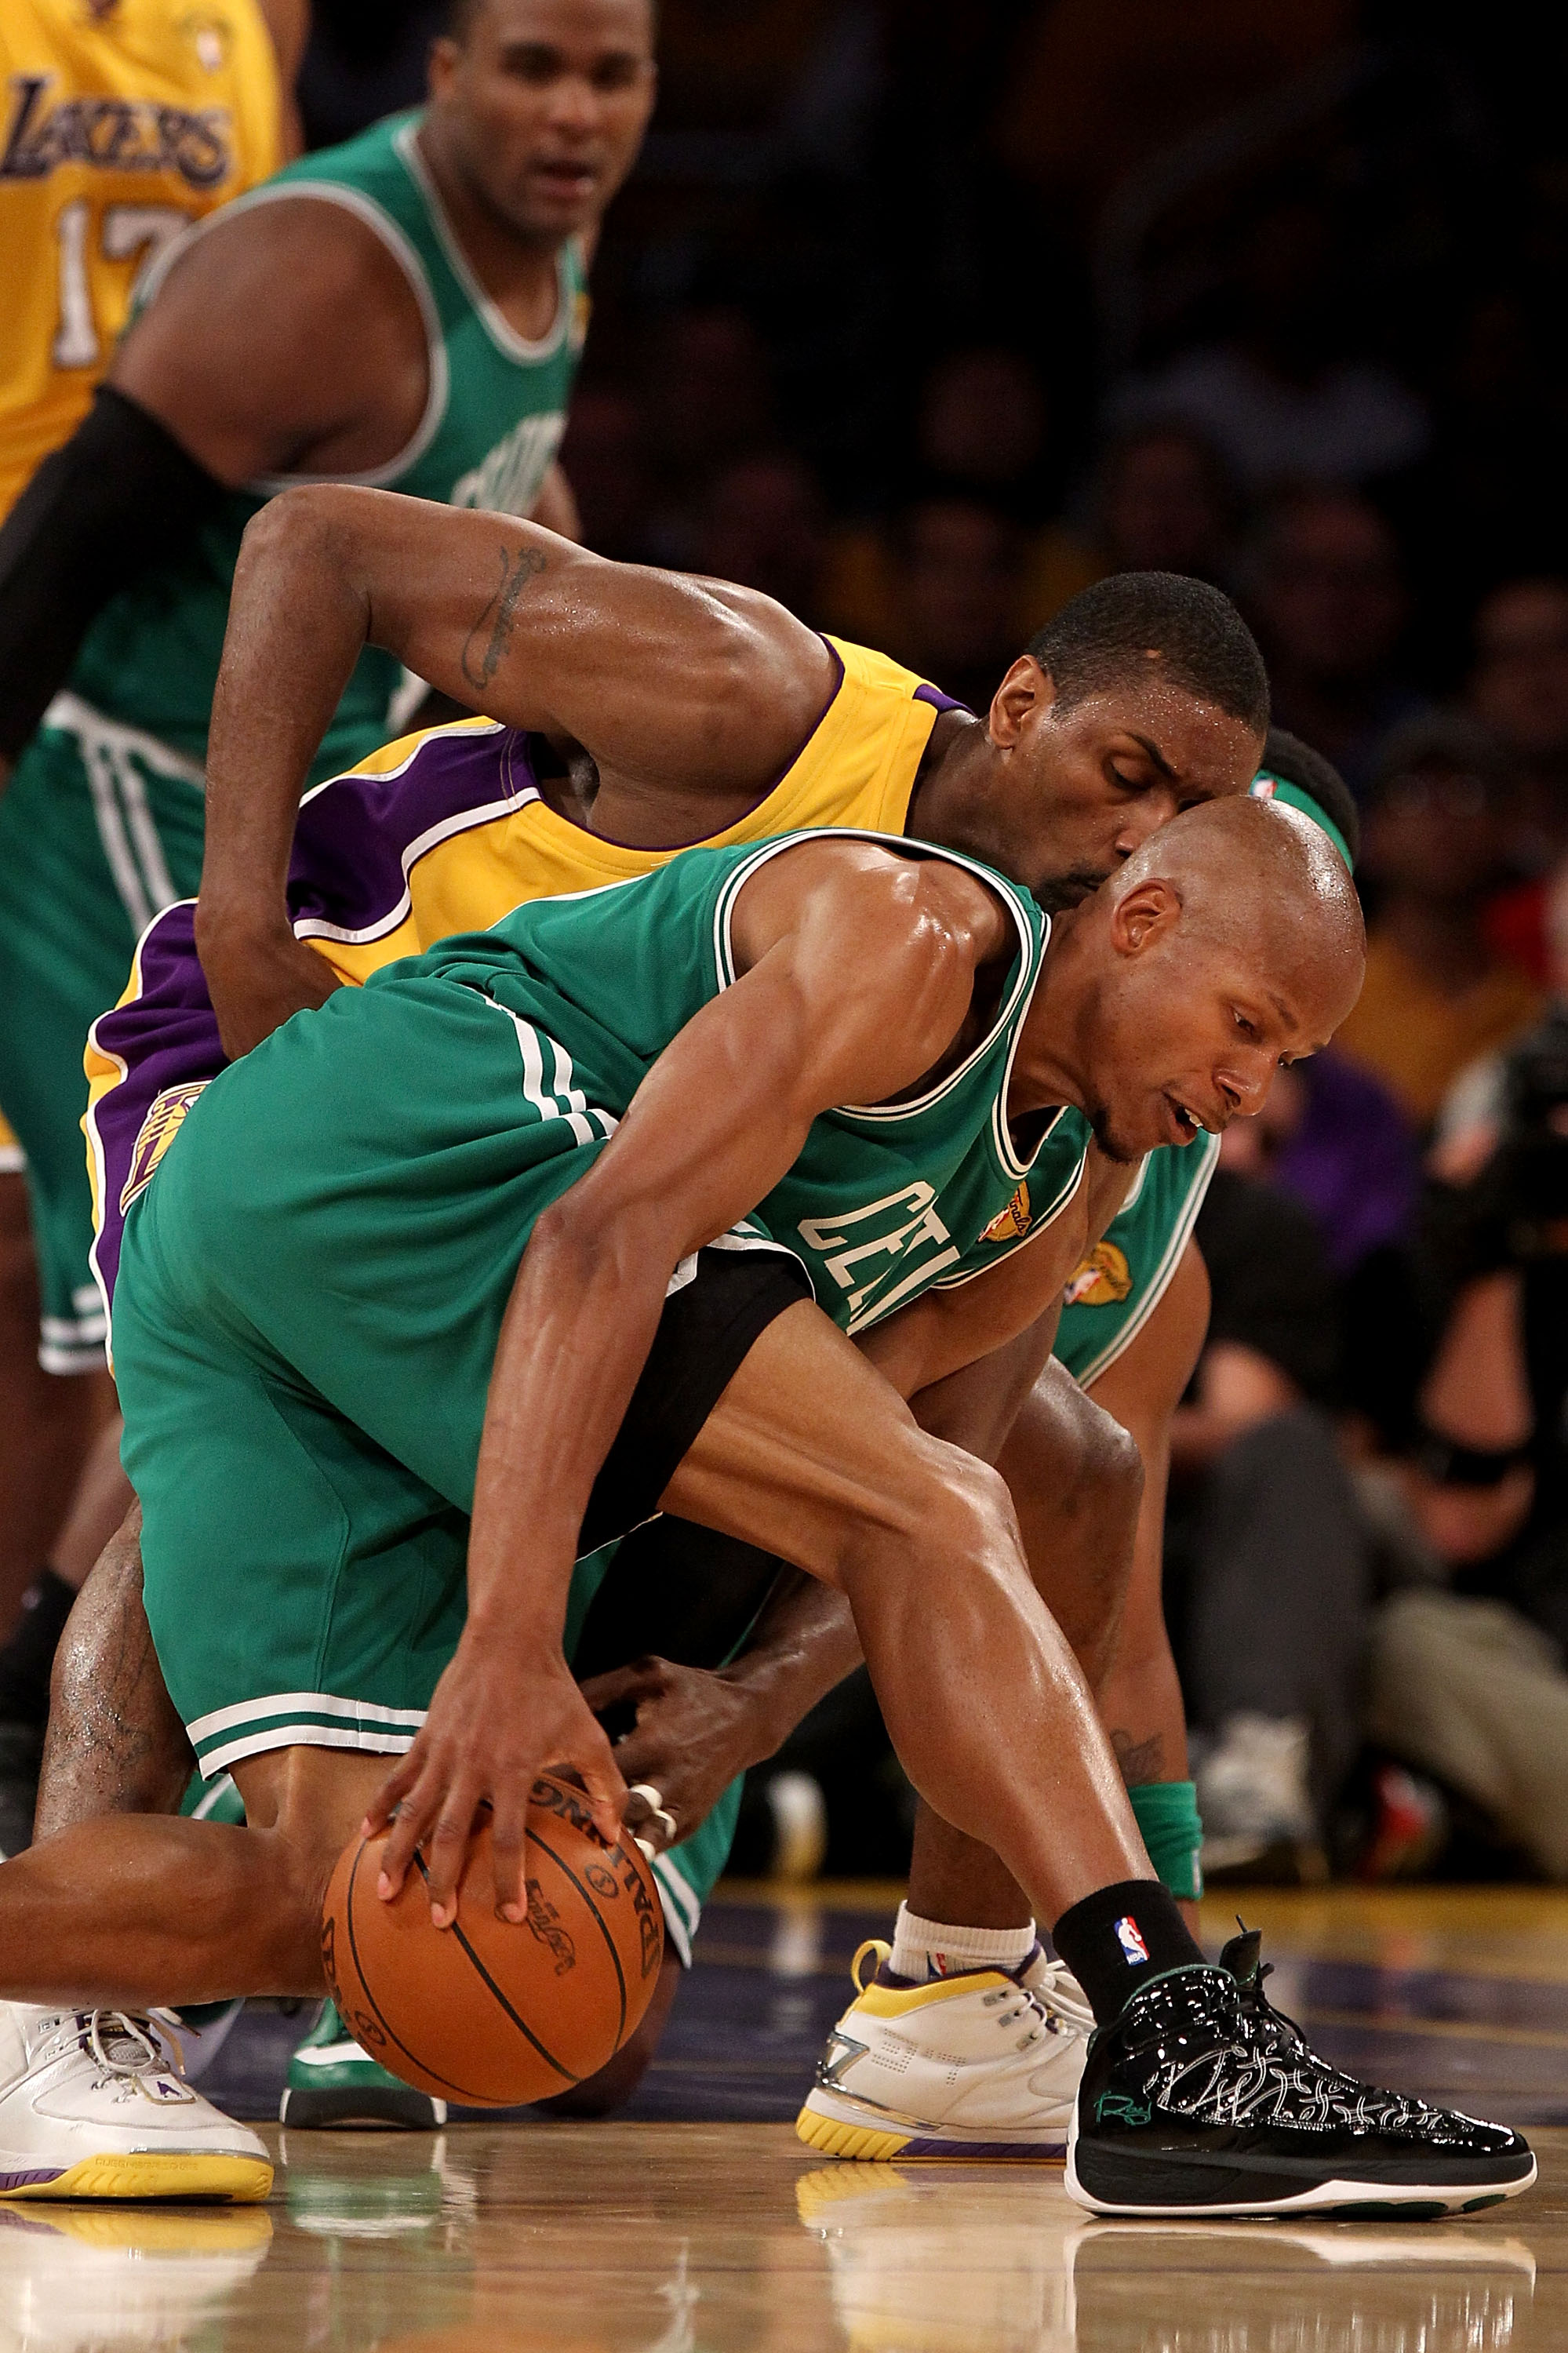 LOS ANGELES, CA - JUNE 17:  Ray Allen #20 of the Boston Celtics tries to hold on to the ball under pressure from Ron Artest #37 of the Los Angeles Lakers in Game Seven of the 2010 NBA Finals at Staples Center on June 17, 2010 in Los Angeles, California.